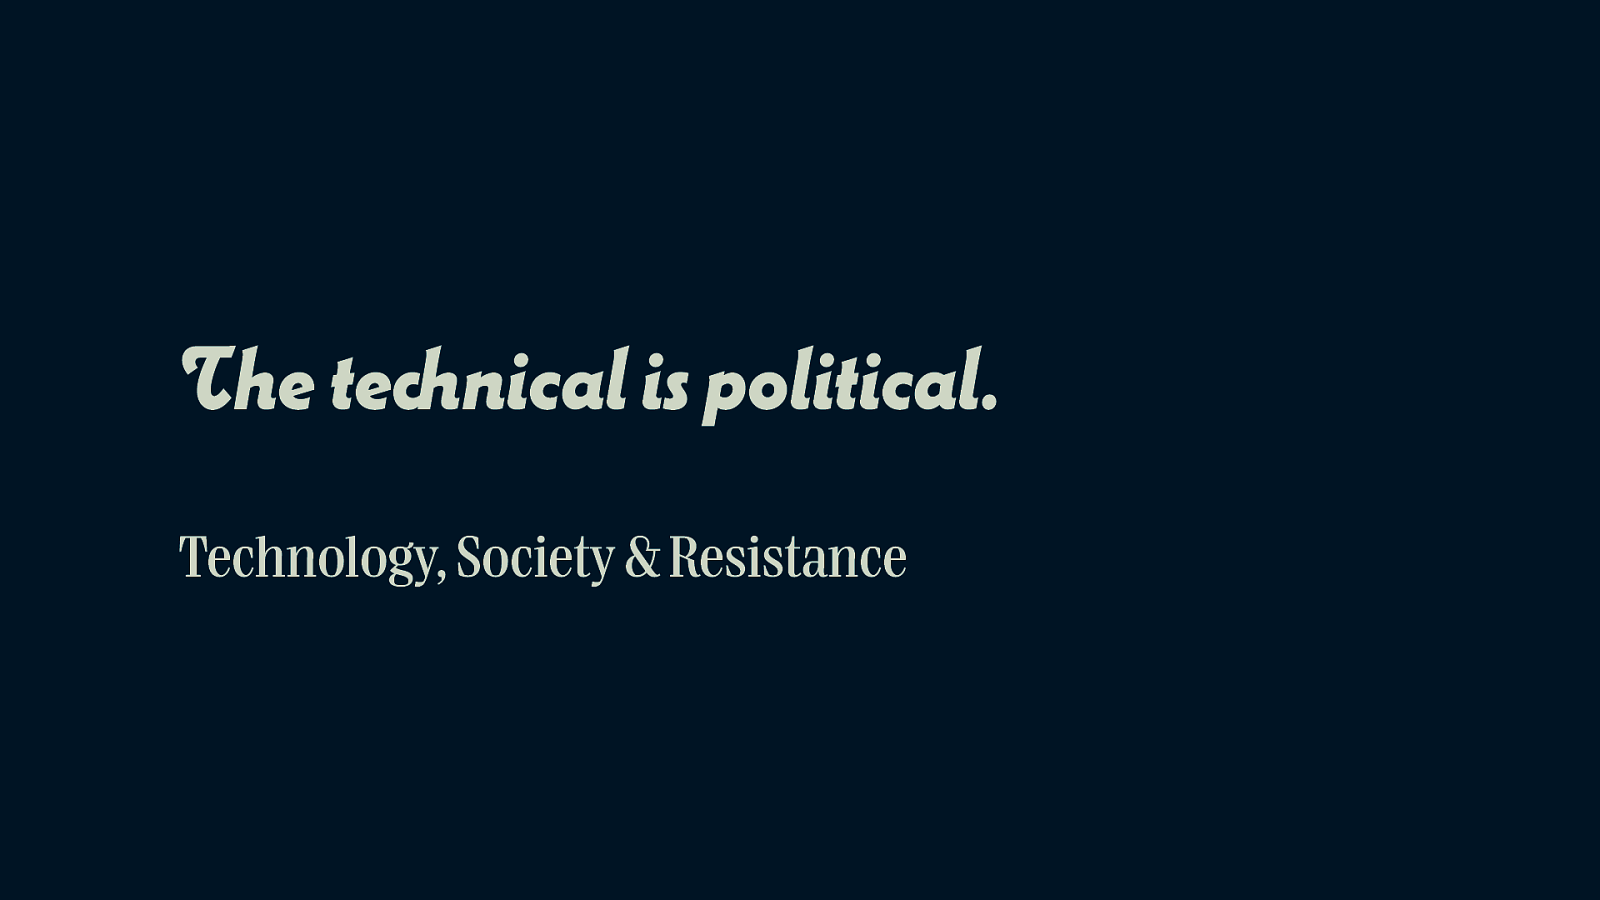 The technical is political – Tech, Society & Resistance